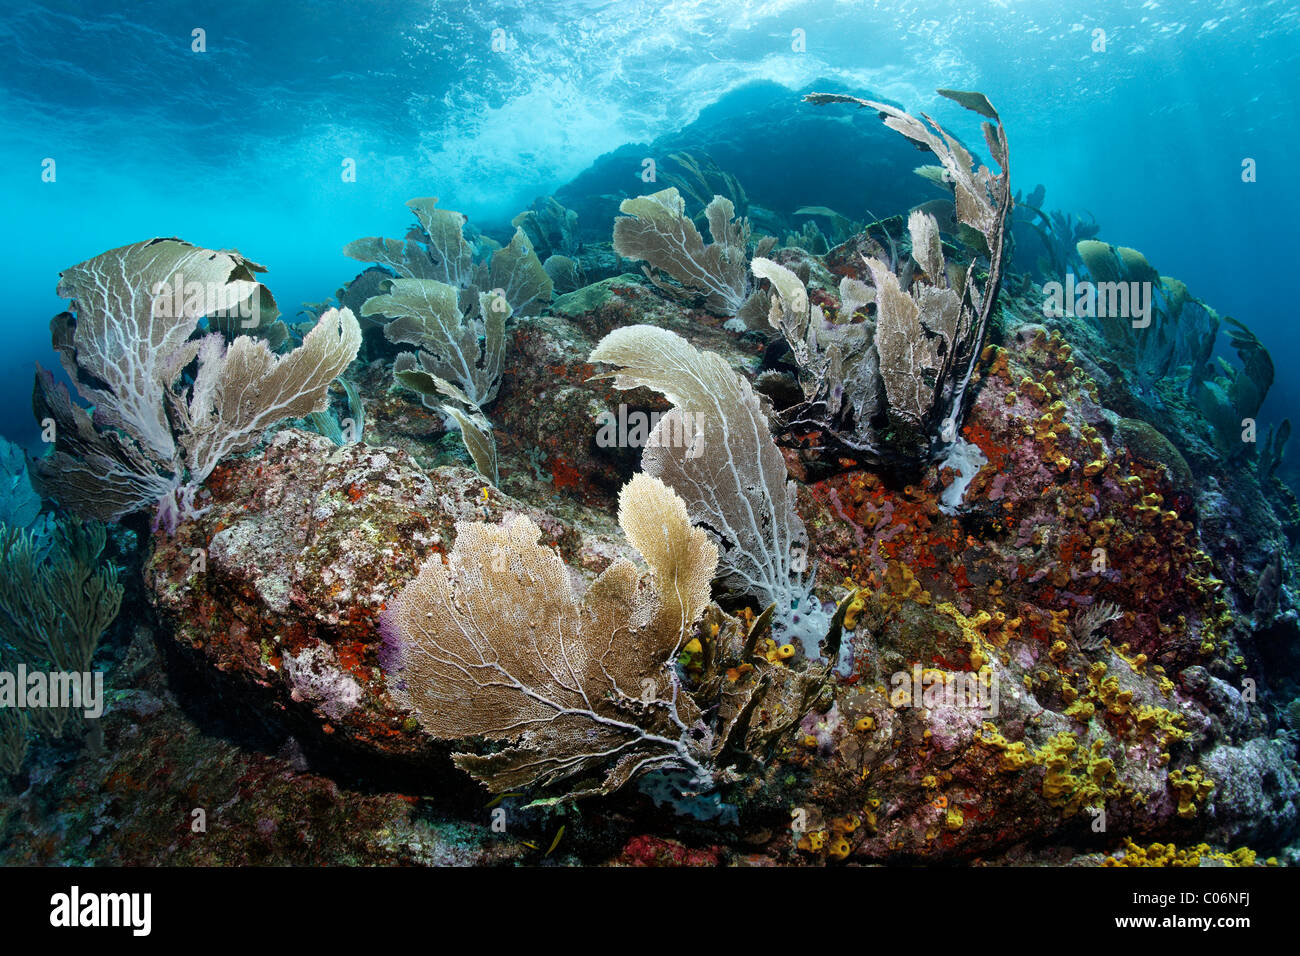 Coral reef with strong waves and currents, Venus sea fan (Gorgonia flabellum), Little Tobago, Speyside, Trinidad Stock Photo